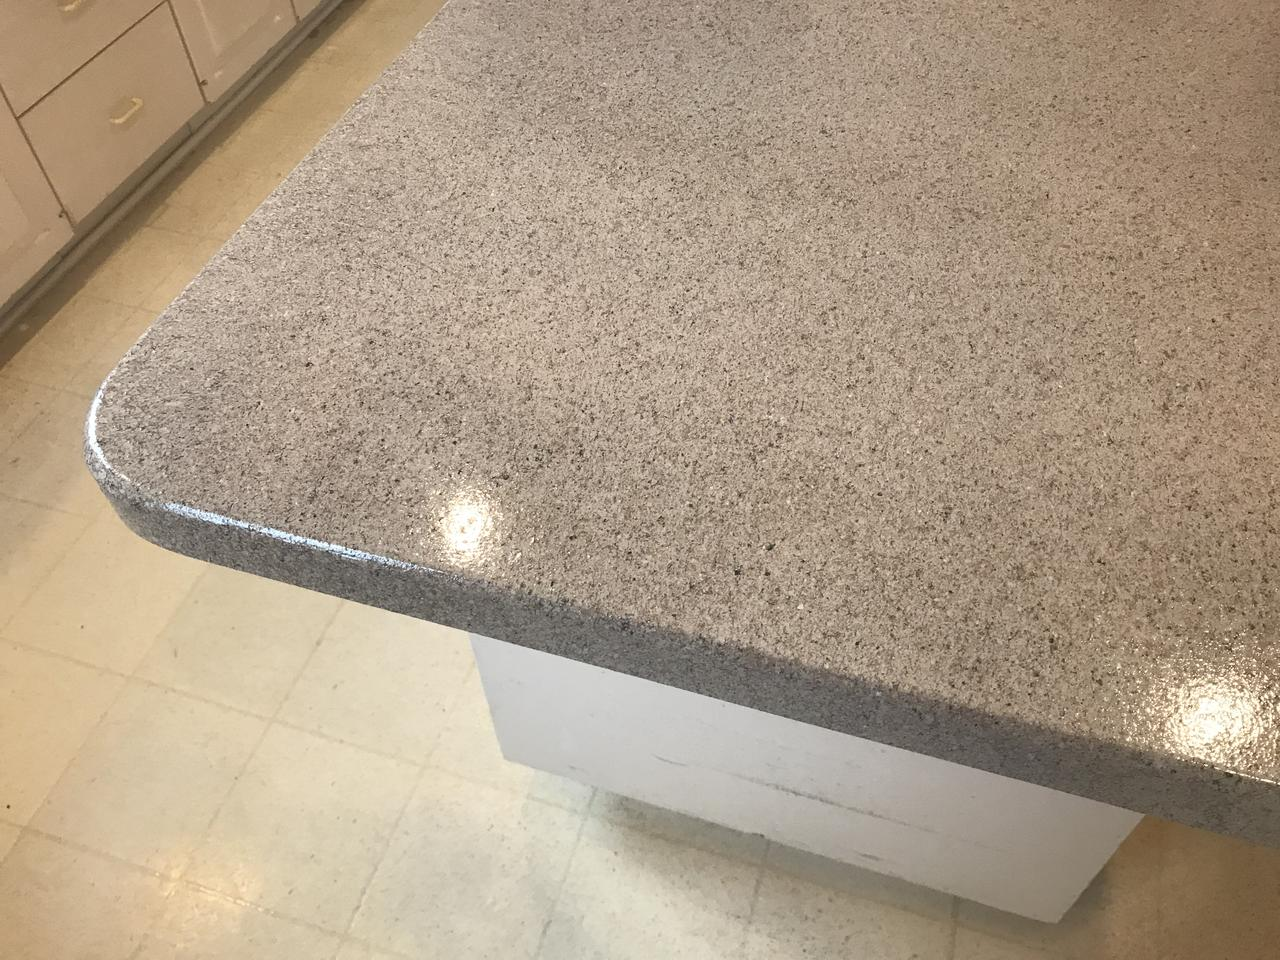 find teh perfect countertops for your kitchen refinishing project